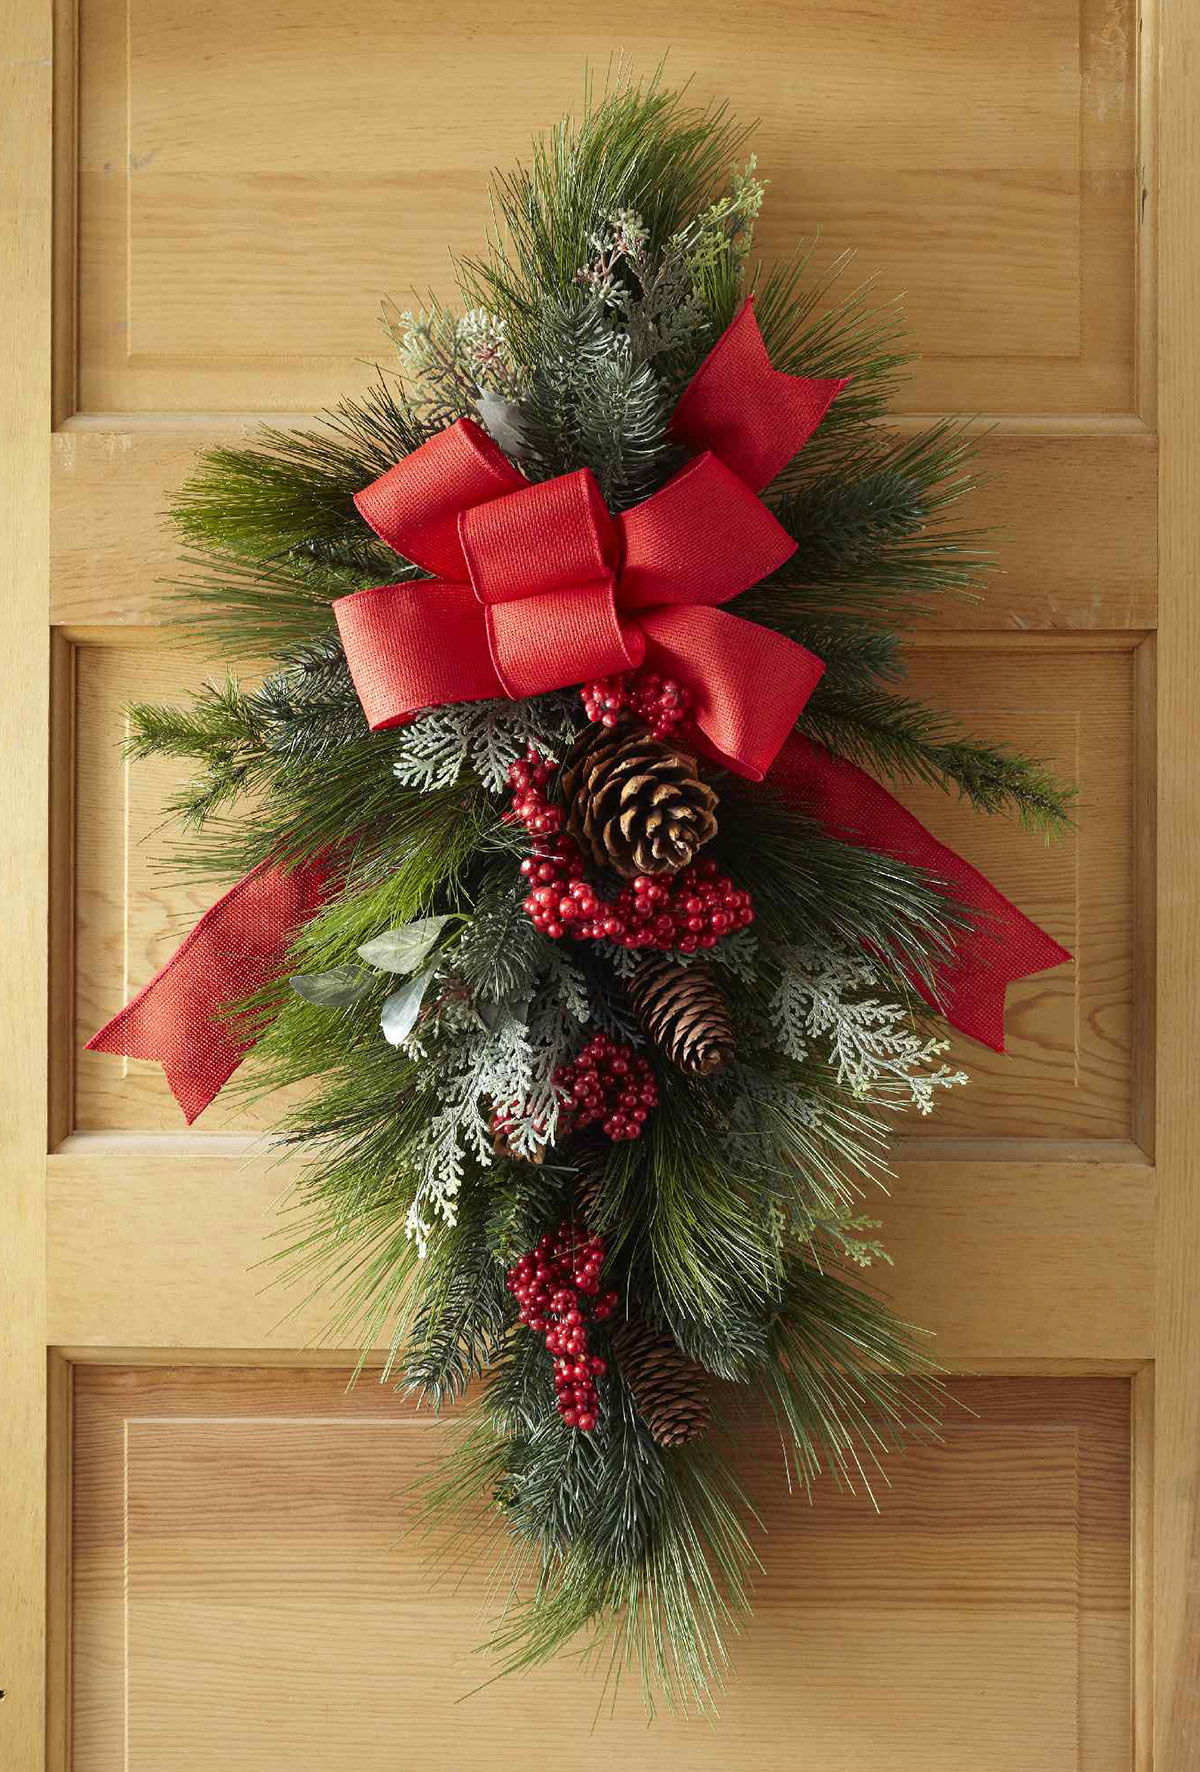 Christmas Swag.How To Make A Christmas Swag Wreath For Your Front Door